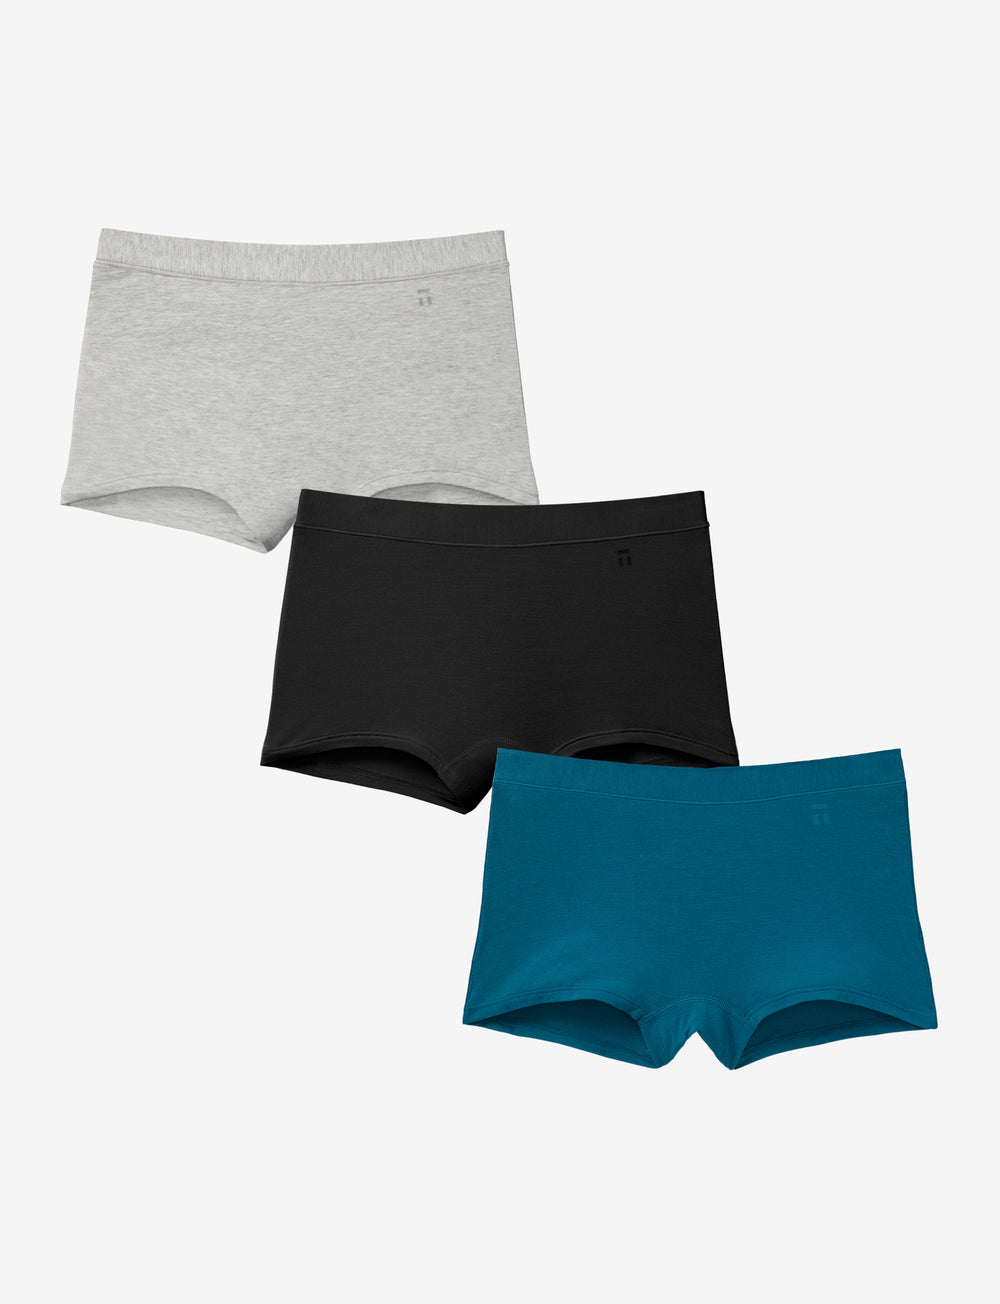 Women's Cool Cotton Boyshort Spring Pack Details Image